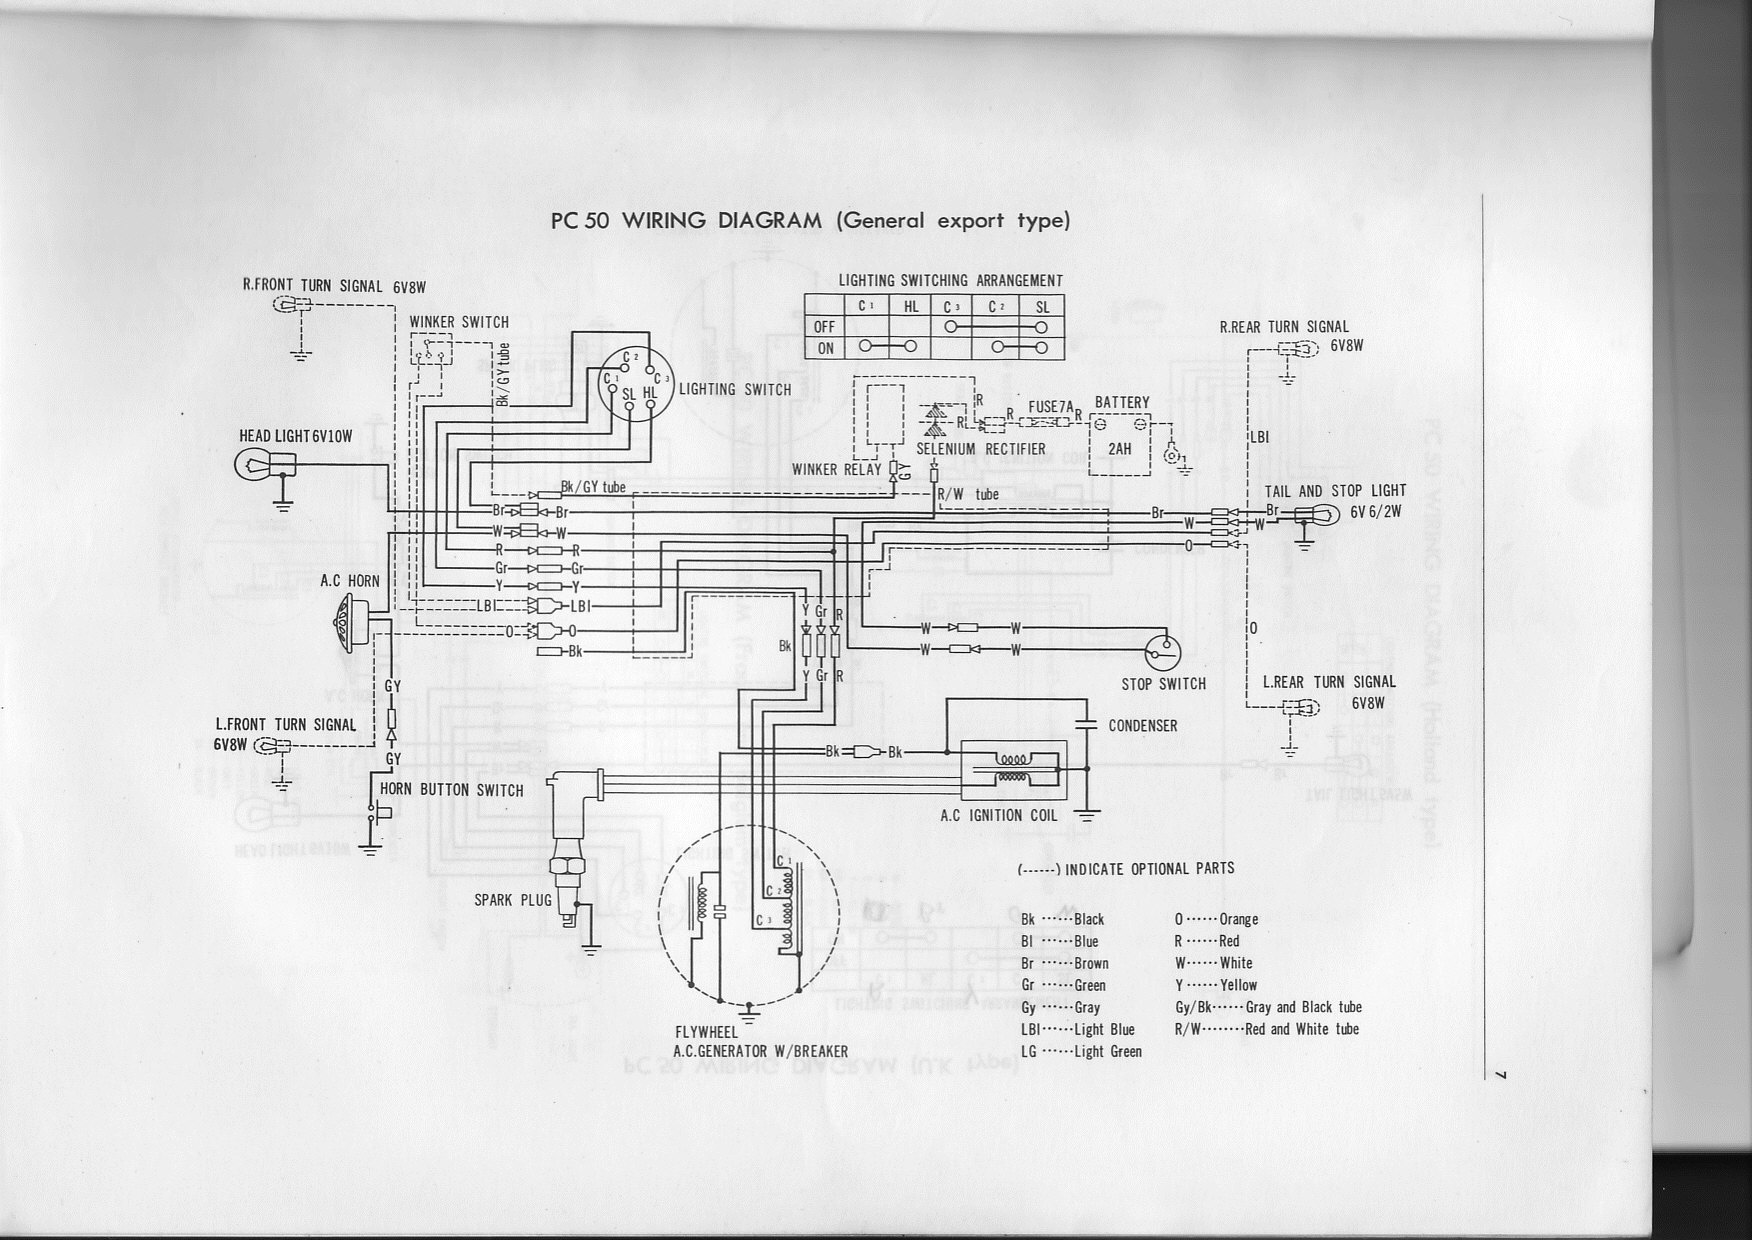 Cb50 Wiring Diagram Trusted Diagrams Cb175 1214006977 Pc50 Img U00b7 Fourstrokebarn Honda Cb125 Fork Lift